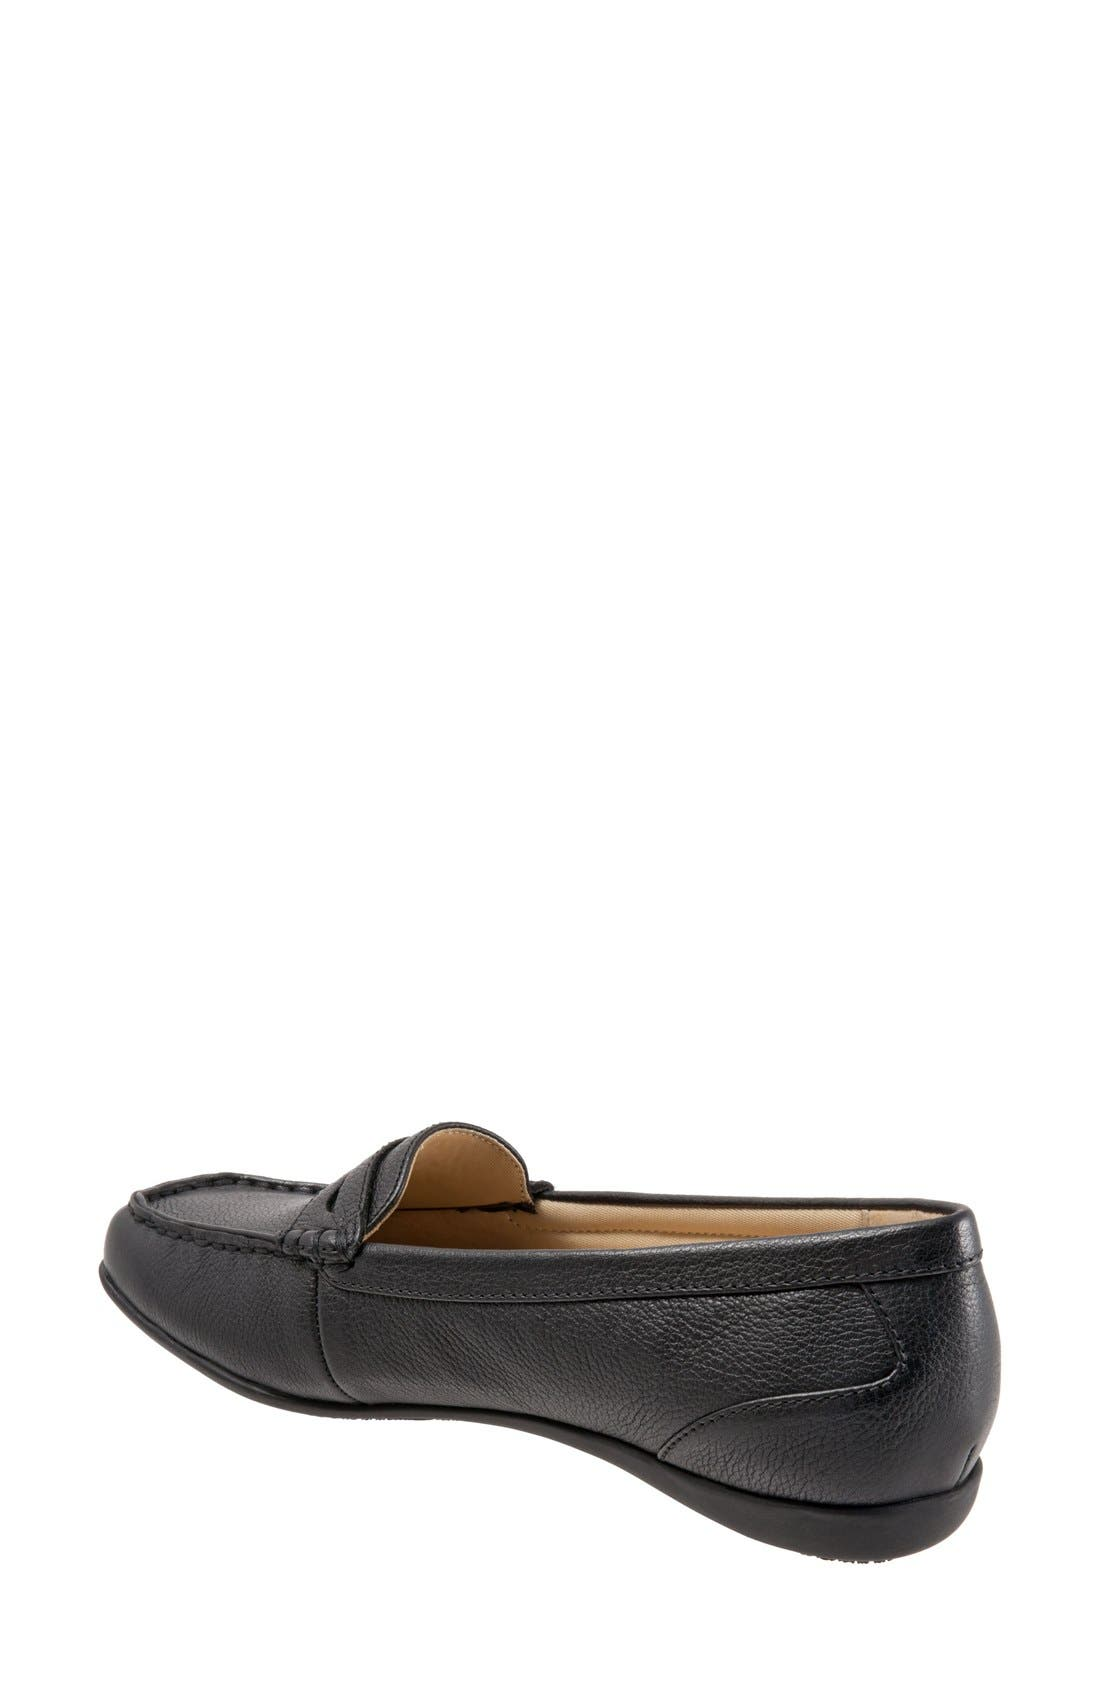 TROTTERS, 'Staci' Penny Loafer, Alternate thumbnail 2, color, BLACK LEATHER